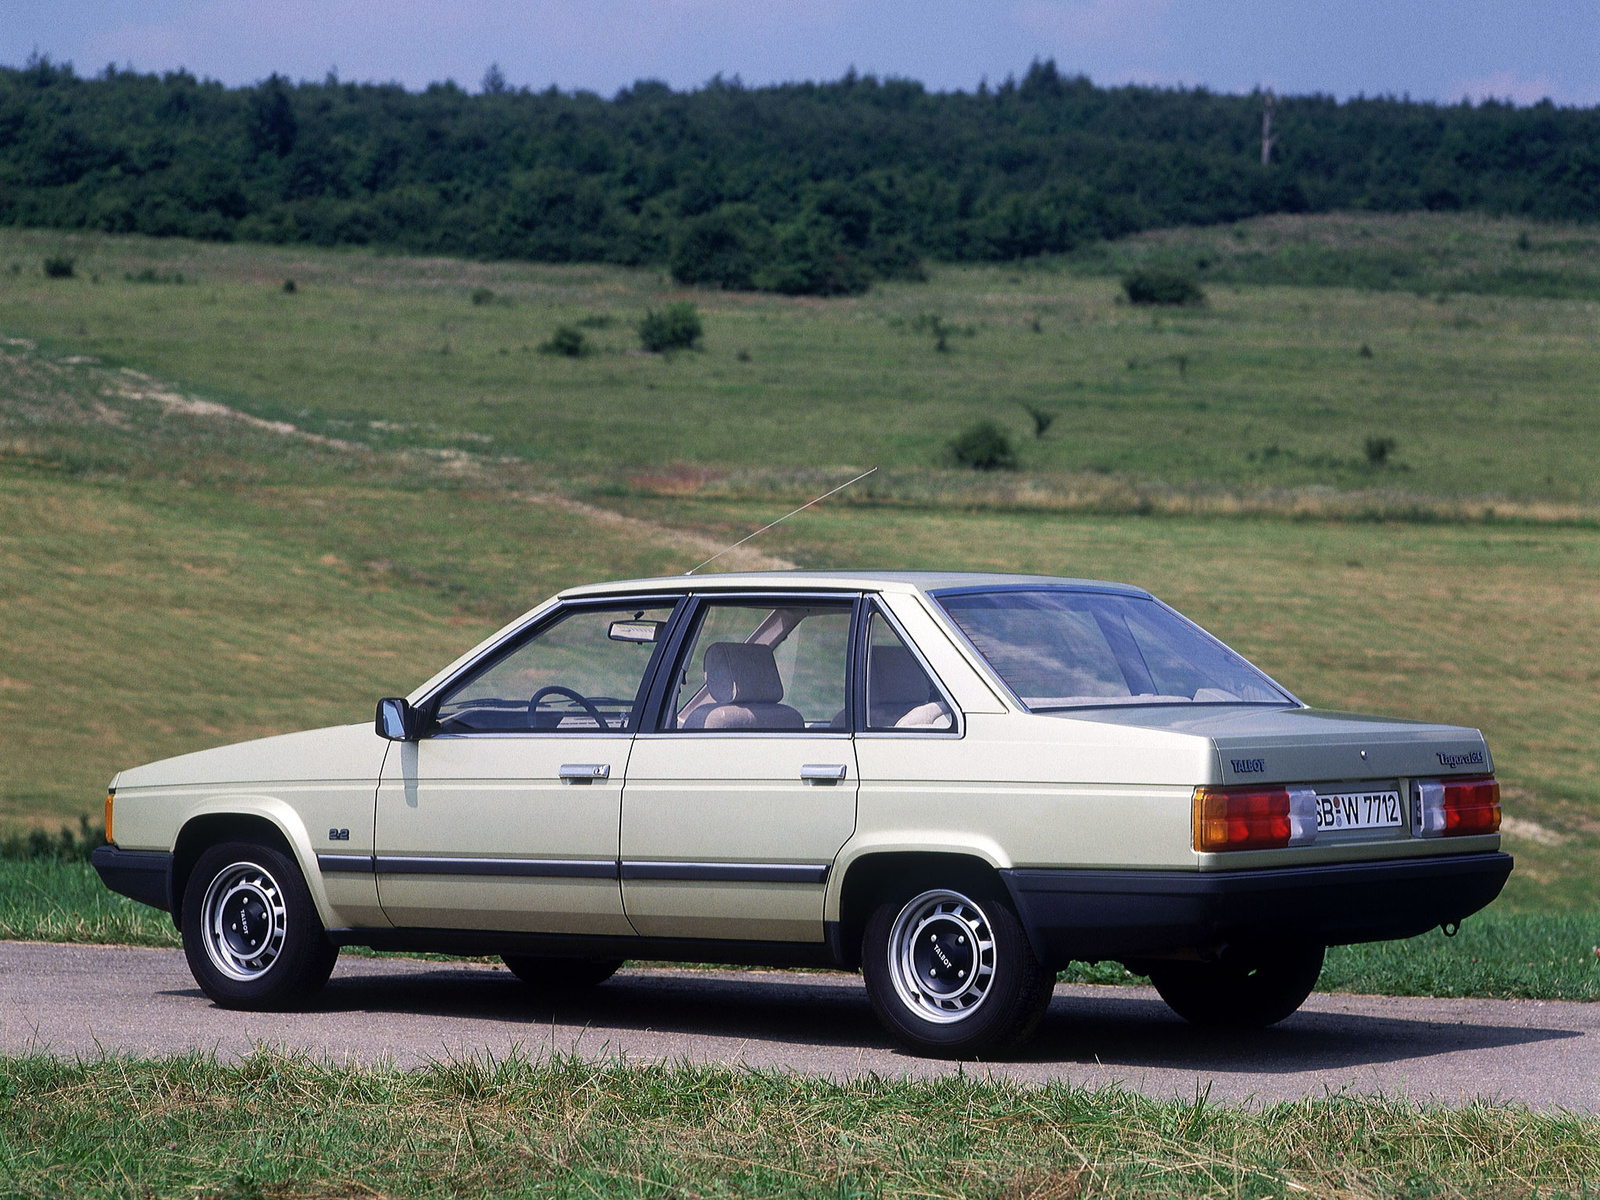 1981 Talbot Tagora Sedan 4-door